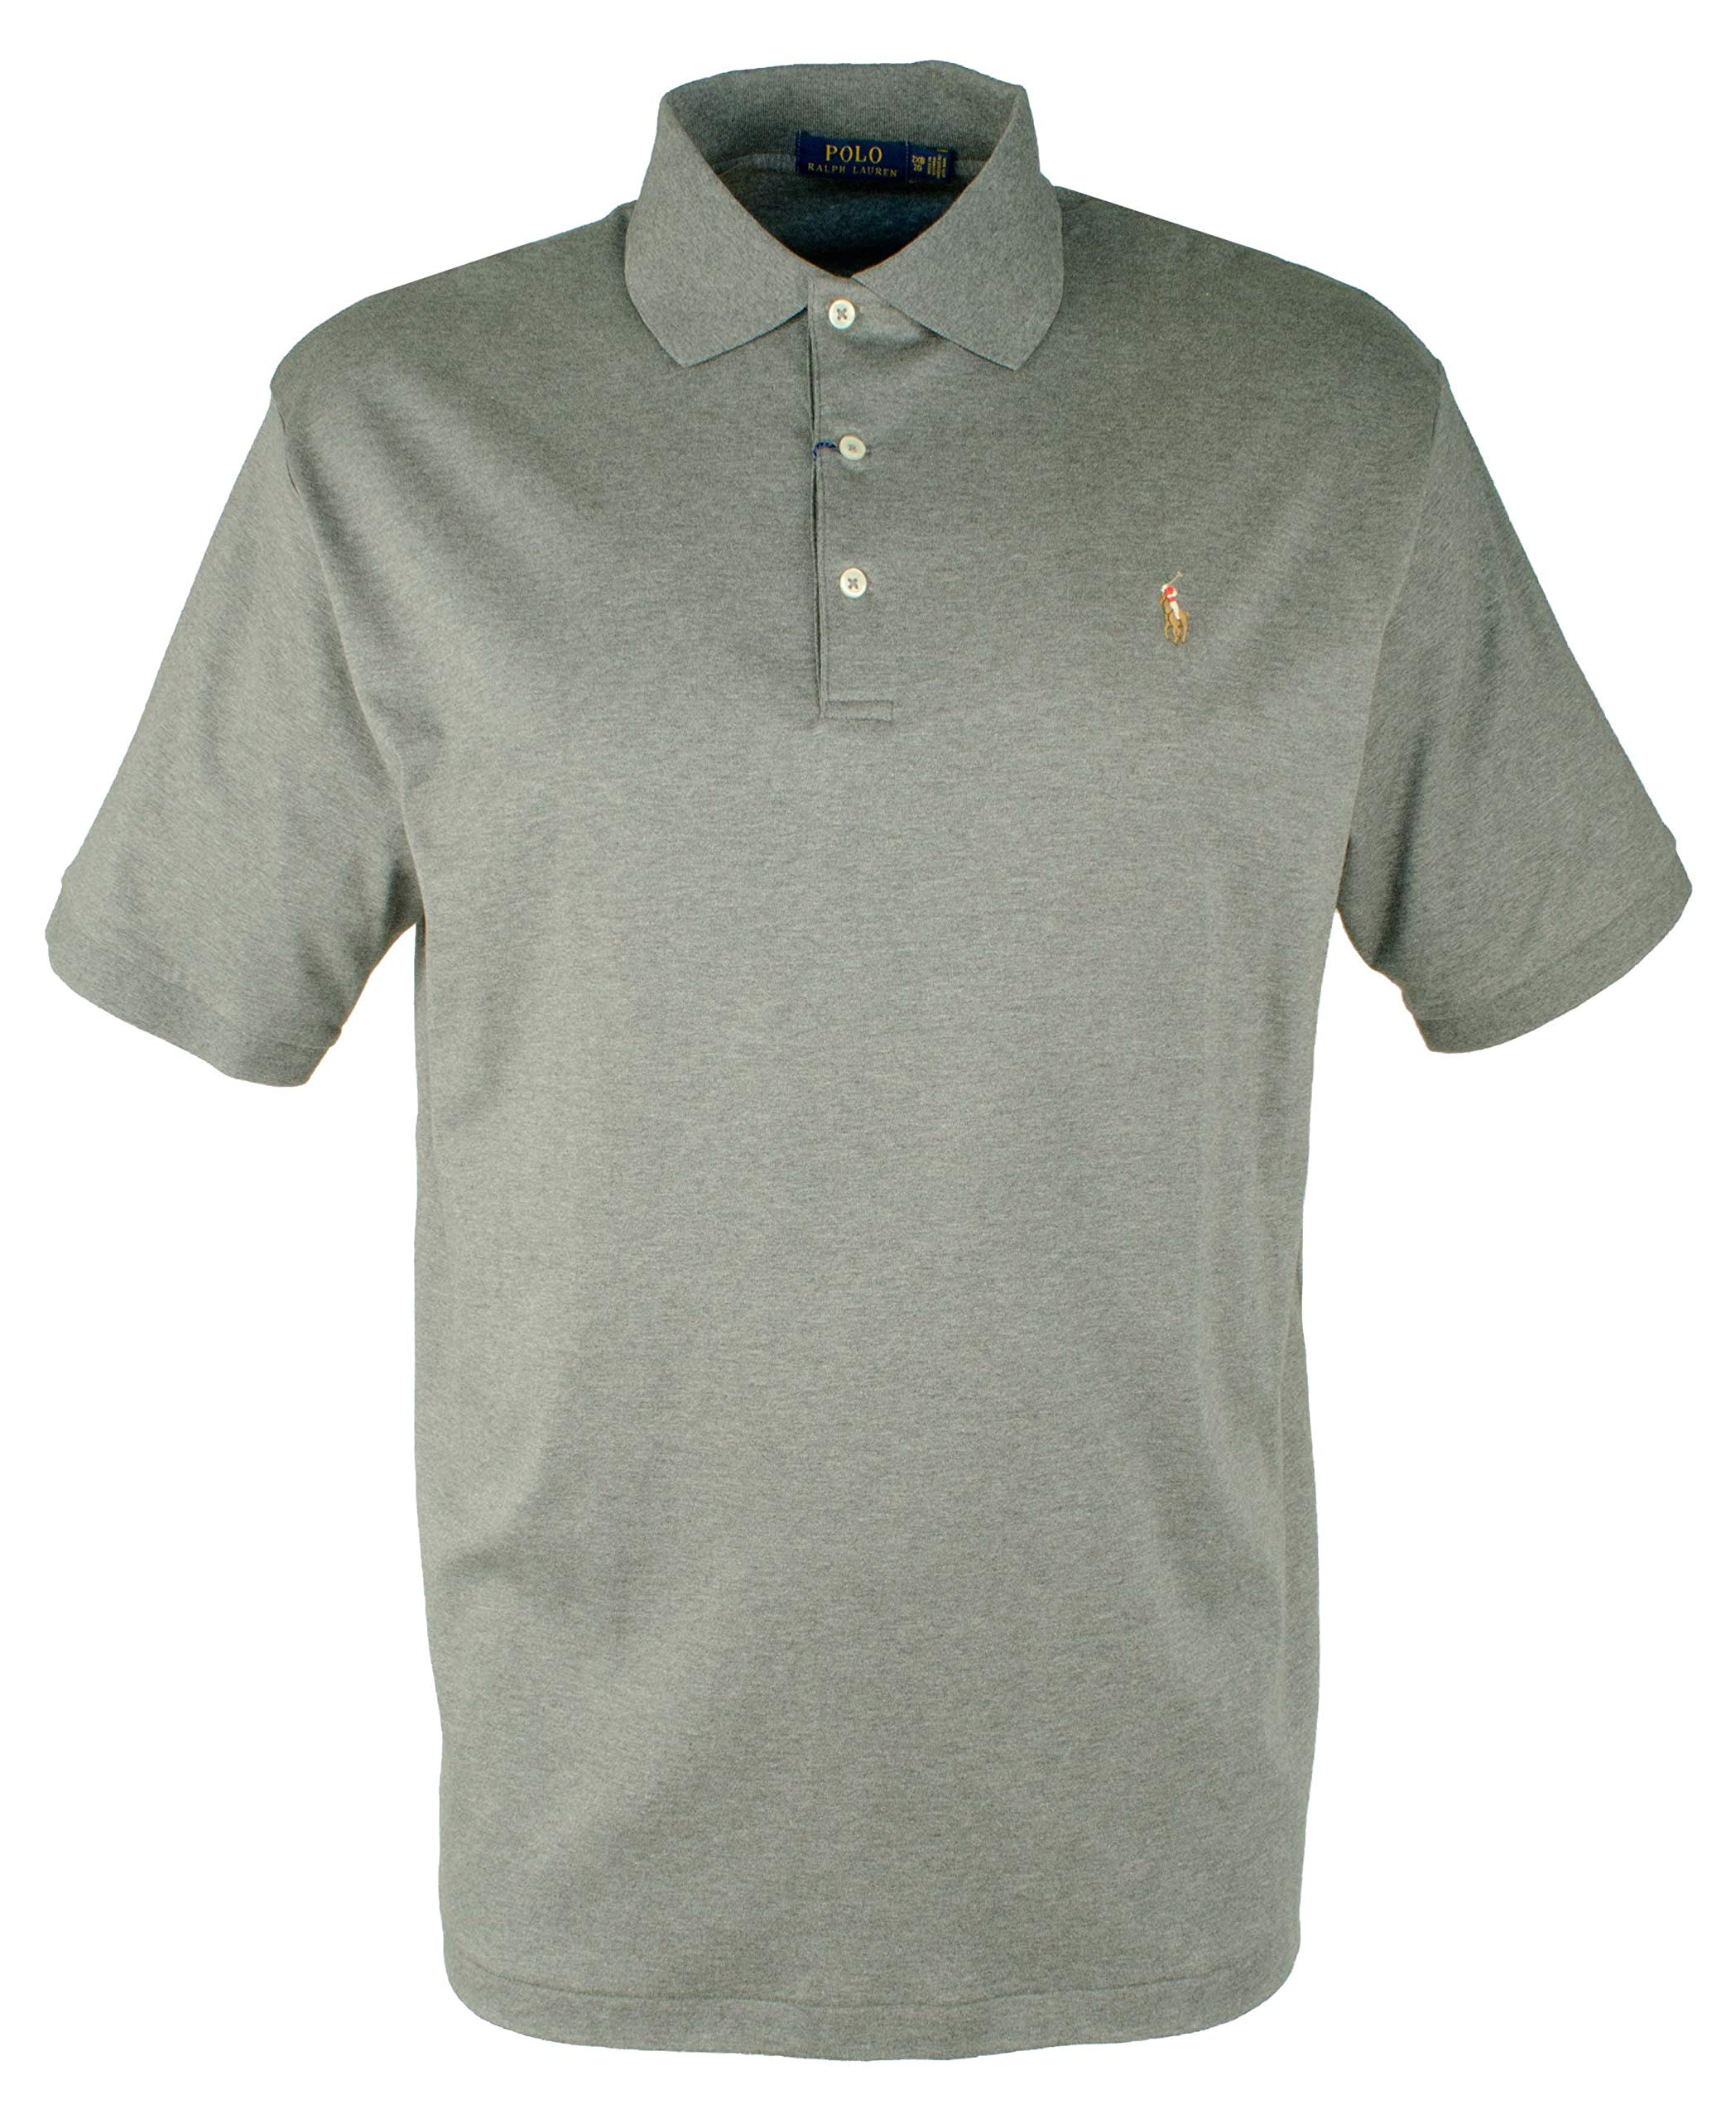 Polo Ralph Lauren Men's Big & Tall Heather Pima Knit Polo Shirt-FG-4XB